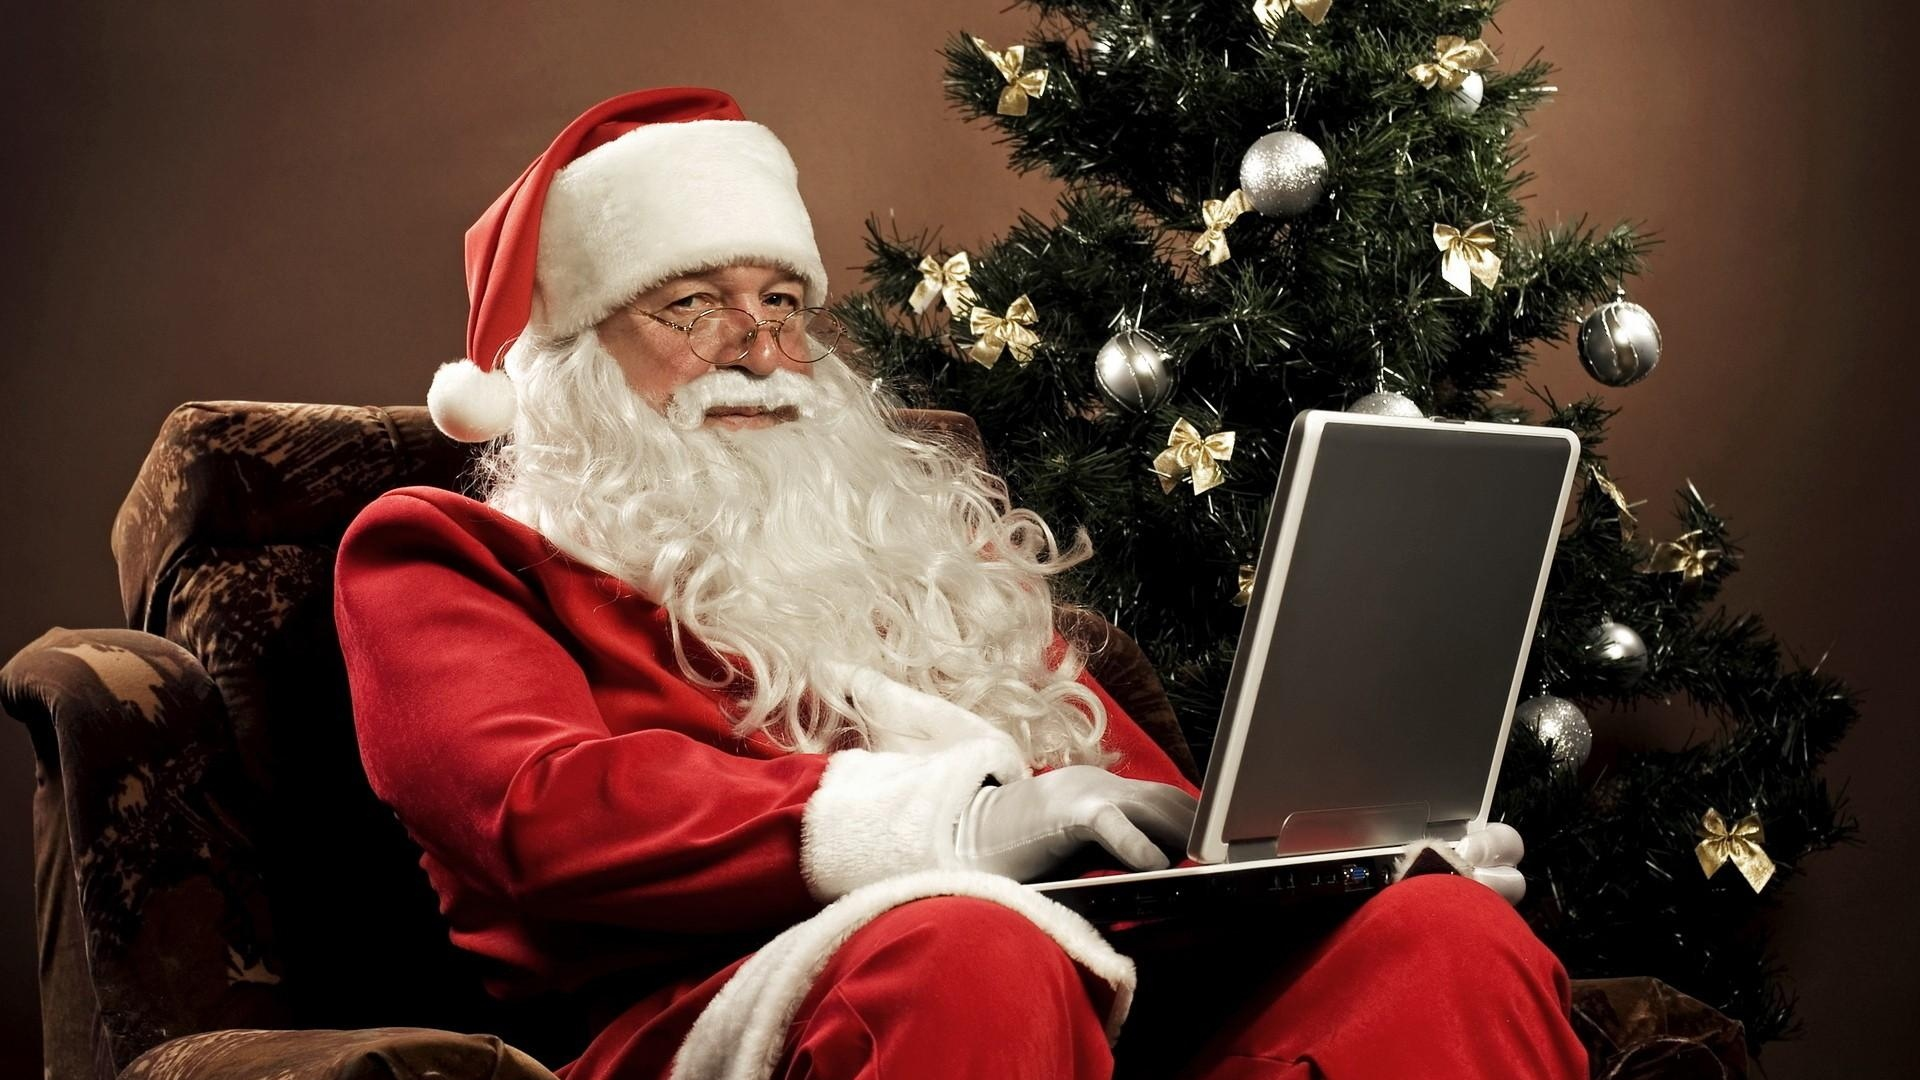 Download Wallpaper 1920x1080 Santa Claus Sitting Look